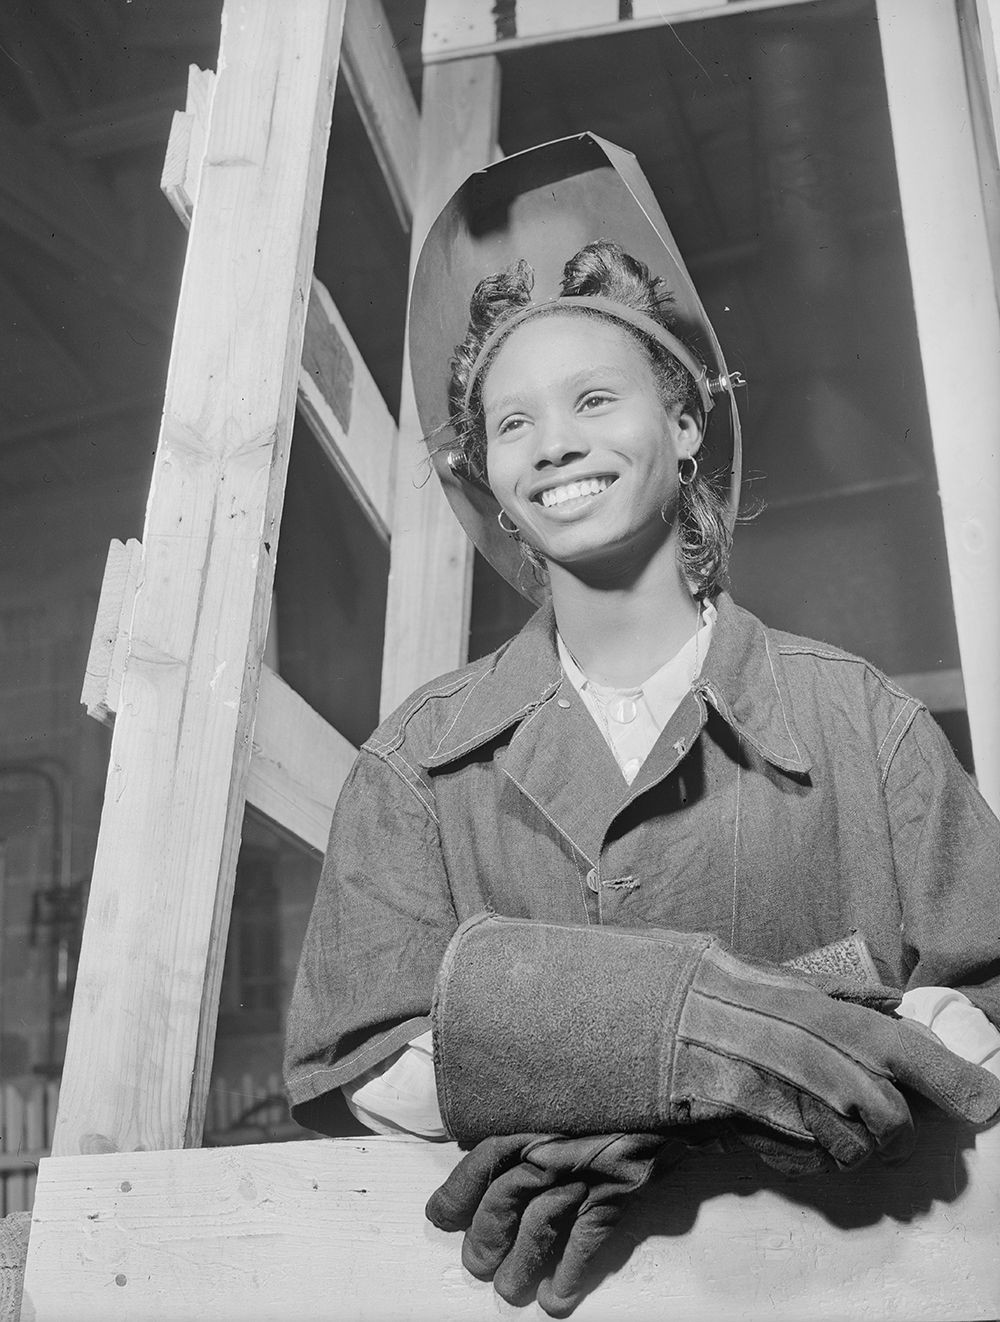 Welder in the National Youth Administration school, Bethune-Cookman College, Daytona Beach, Florida, 1943. Photograph by Gordon Parks. Library of Congress, Prints and Photographs Division.